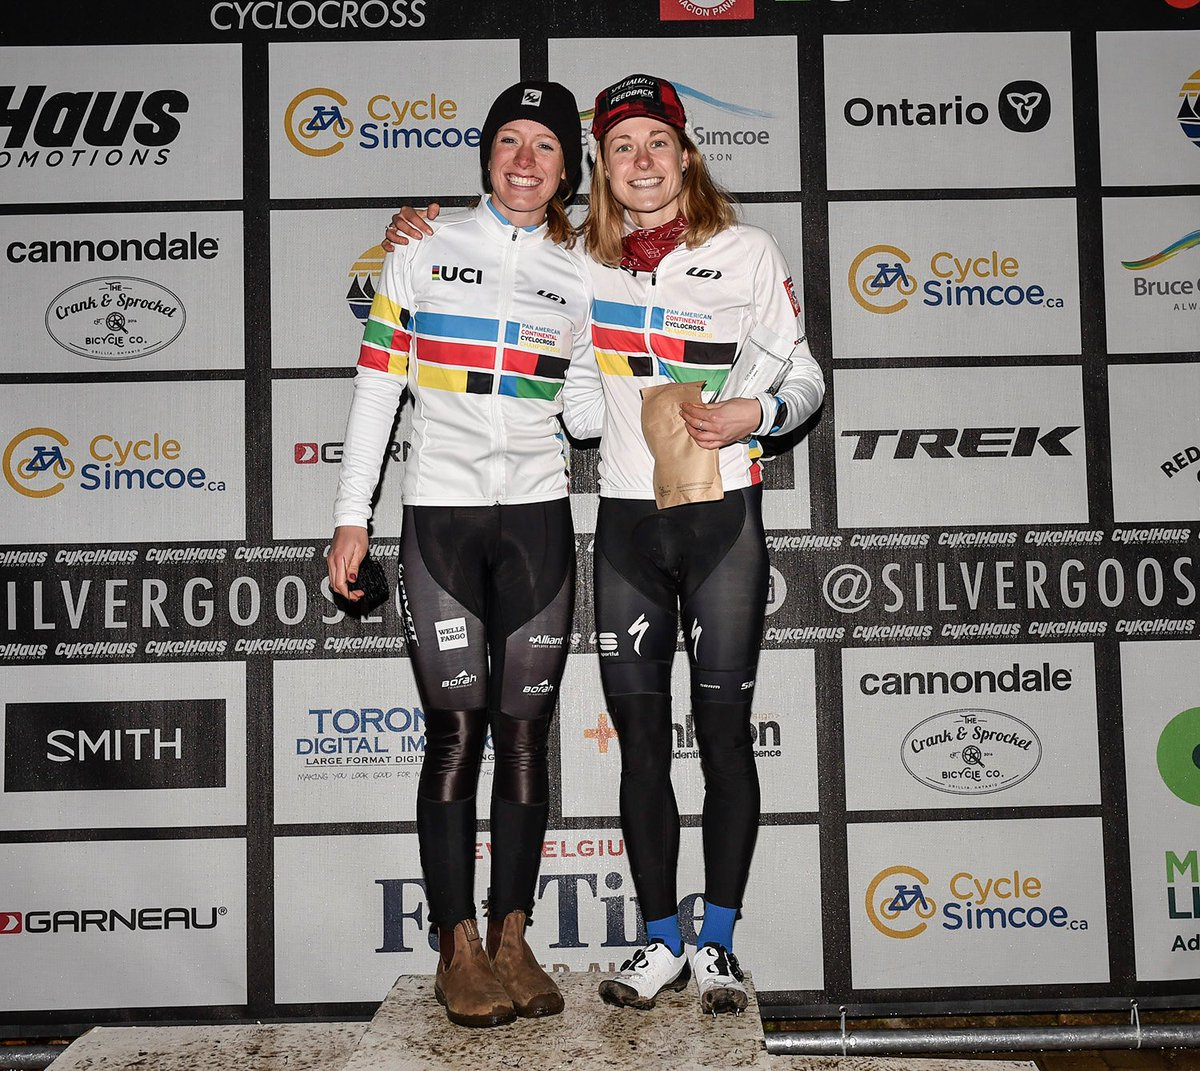 test Twitter Media - 💥That's a wrap folks! The 2019 Pan Am Cyclocross Champs @SilverGooseCX 🦆 conclude with two 🇨🇦Canucks sealing 🏆 titles on home soil. Bottoms up @maghroch and @ruby__west 🍻  🔗: https://t.co/gWBq56GugT 📷: @cdncyclist https://t.co/lb6afxUS43